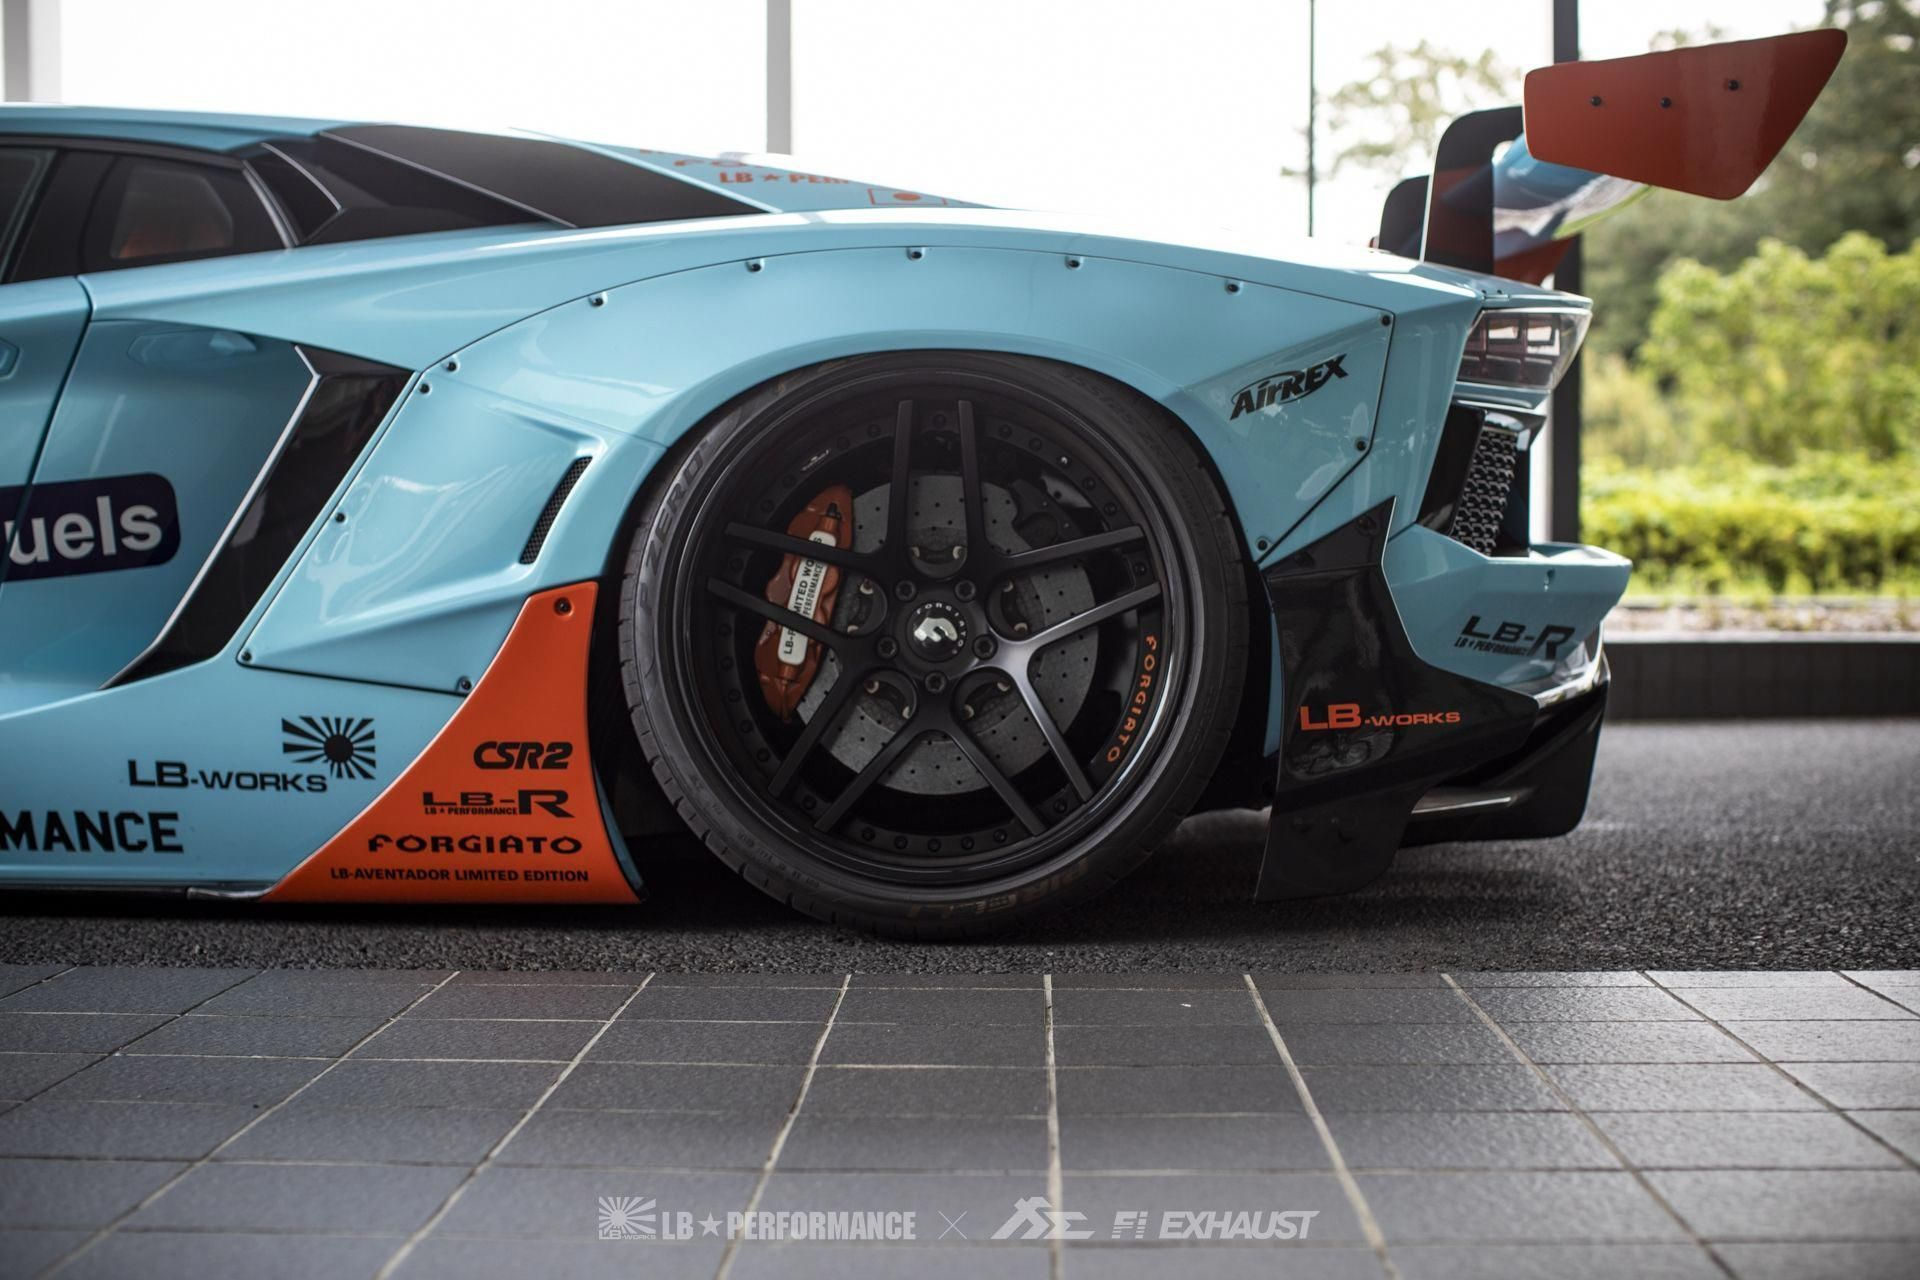 edition body kit paired with exclusive Fi EXHAUST sound. Liberty Walk X Wataru Kato X SKY FORGED X